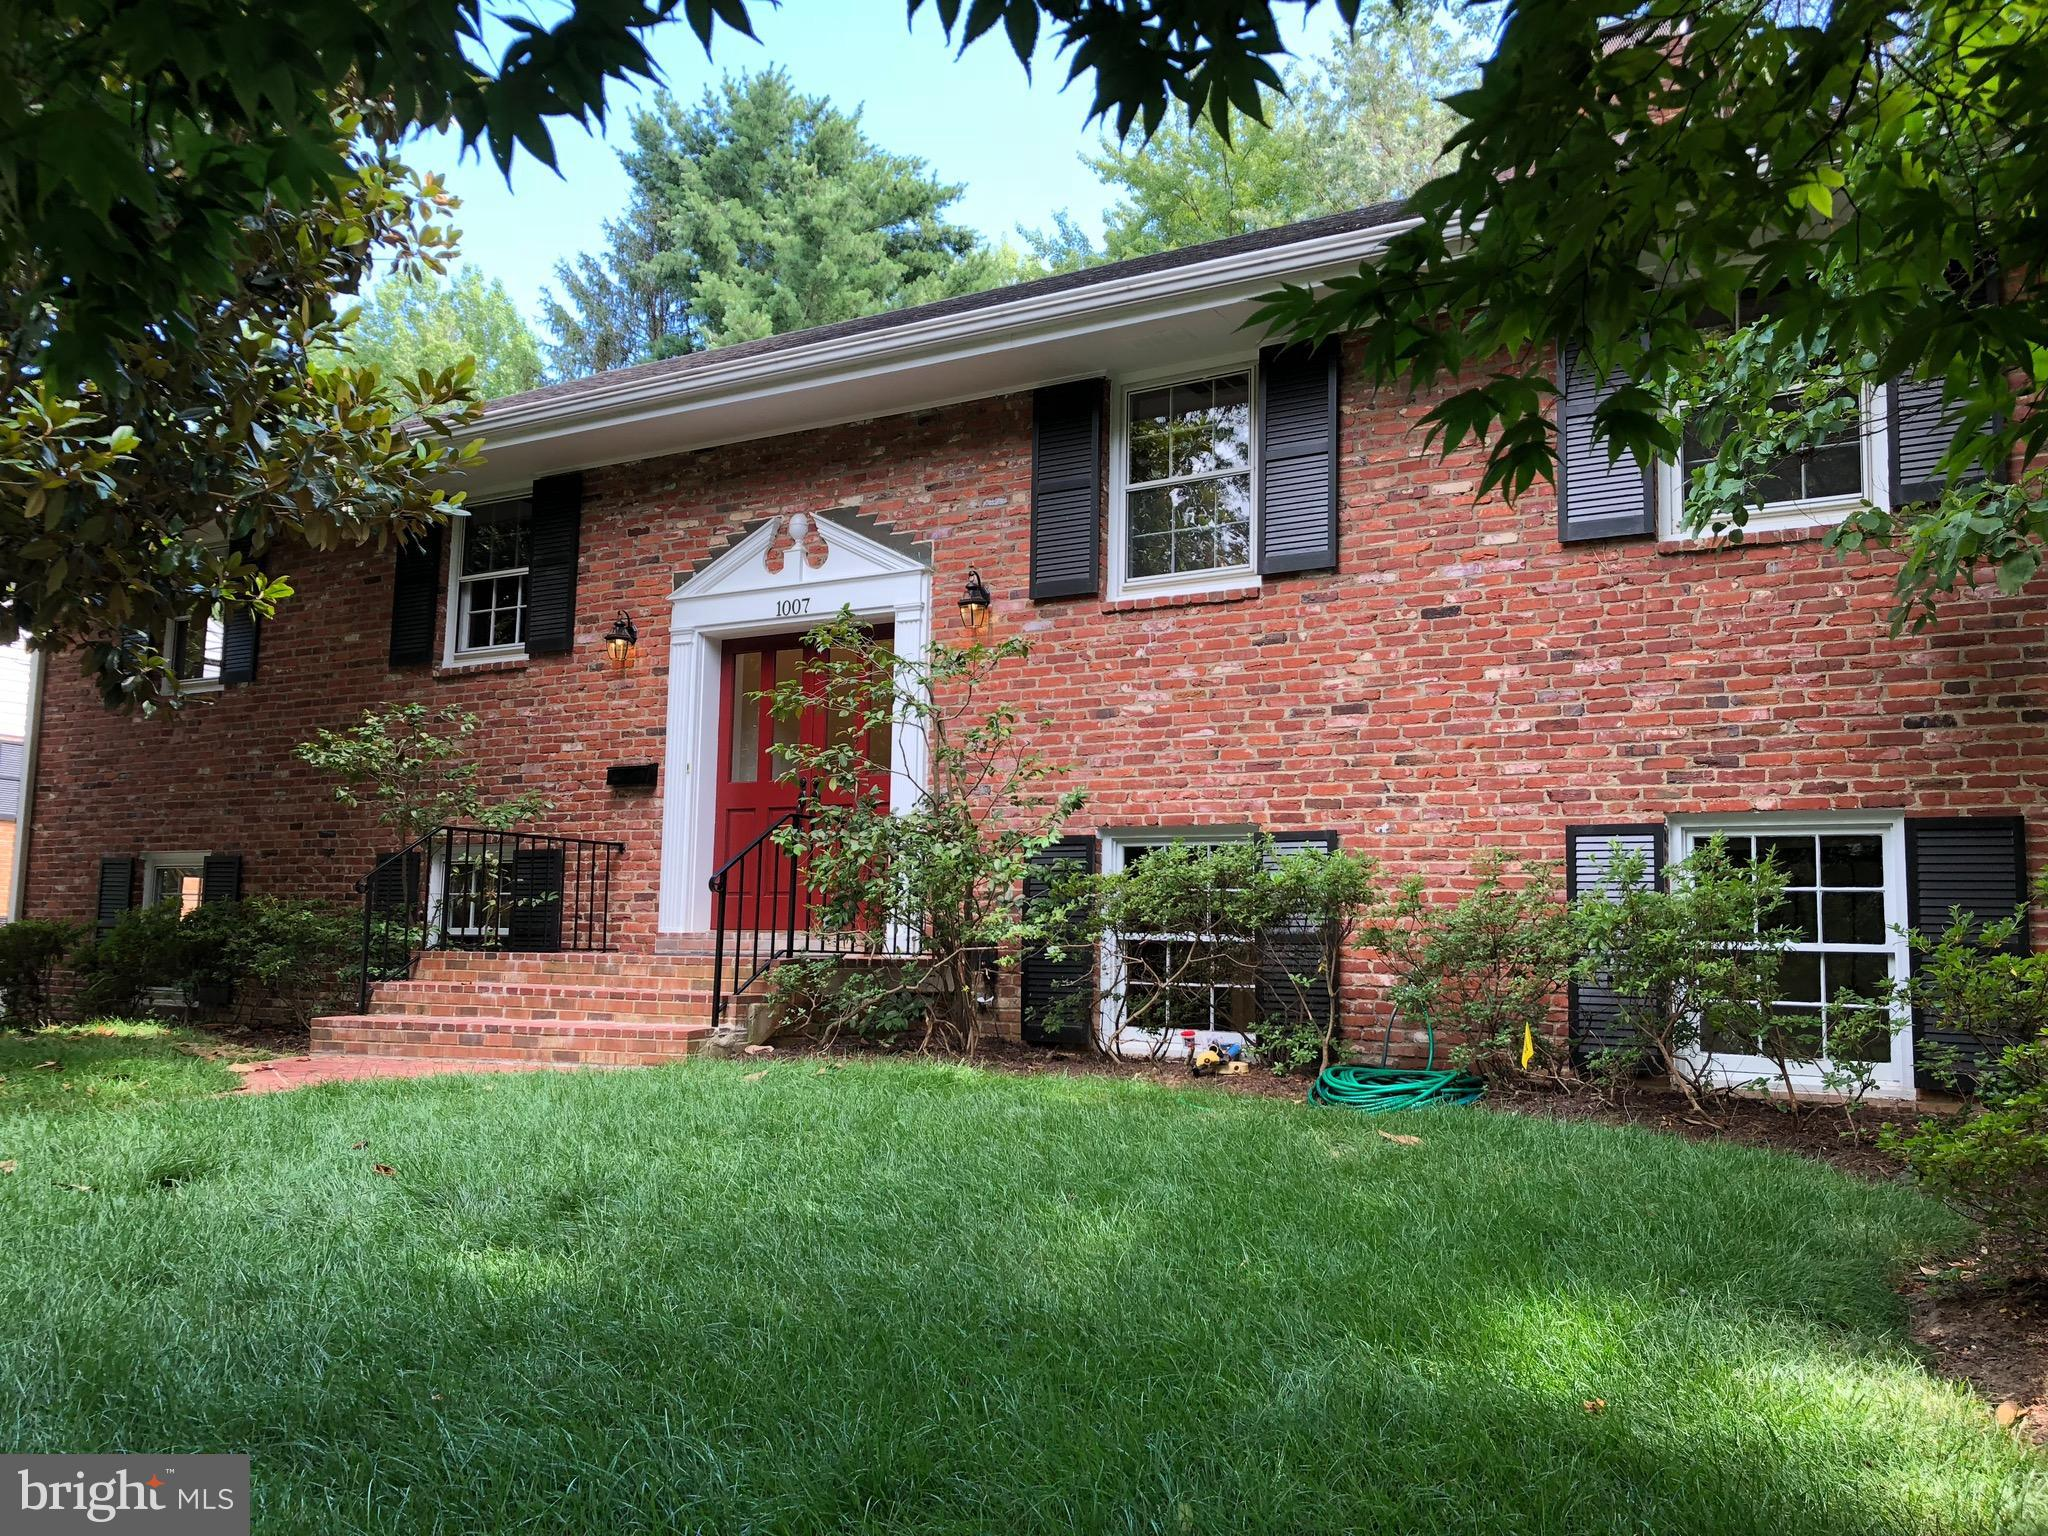 GREAT REMODELED (3000+SQ.FT) 5 BEDROOM 3 BATH SF IN WAYNEWOOD !! GARAGE, 3 FIREPLACES (2 ARE GAS), HARDWOOD FLOORS,  HUGE KITCHEN WITH FIREPLACE. ALL NEW BATHS. NEW CARPETS, FRESH PAINT, LG STORAGE AREA.  WALK IN CLOSET.  GREAT AREA. BY THE POTOMAC RIVER/BIKETRAIL. WALK TO SCHOOLS/POOL/PARK. MNTS TO OLD TOWN, EASY COMMUTE TO THE PENTAGON, FORT BELVOIR AND DC NOTHING TO DO!!!